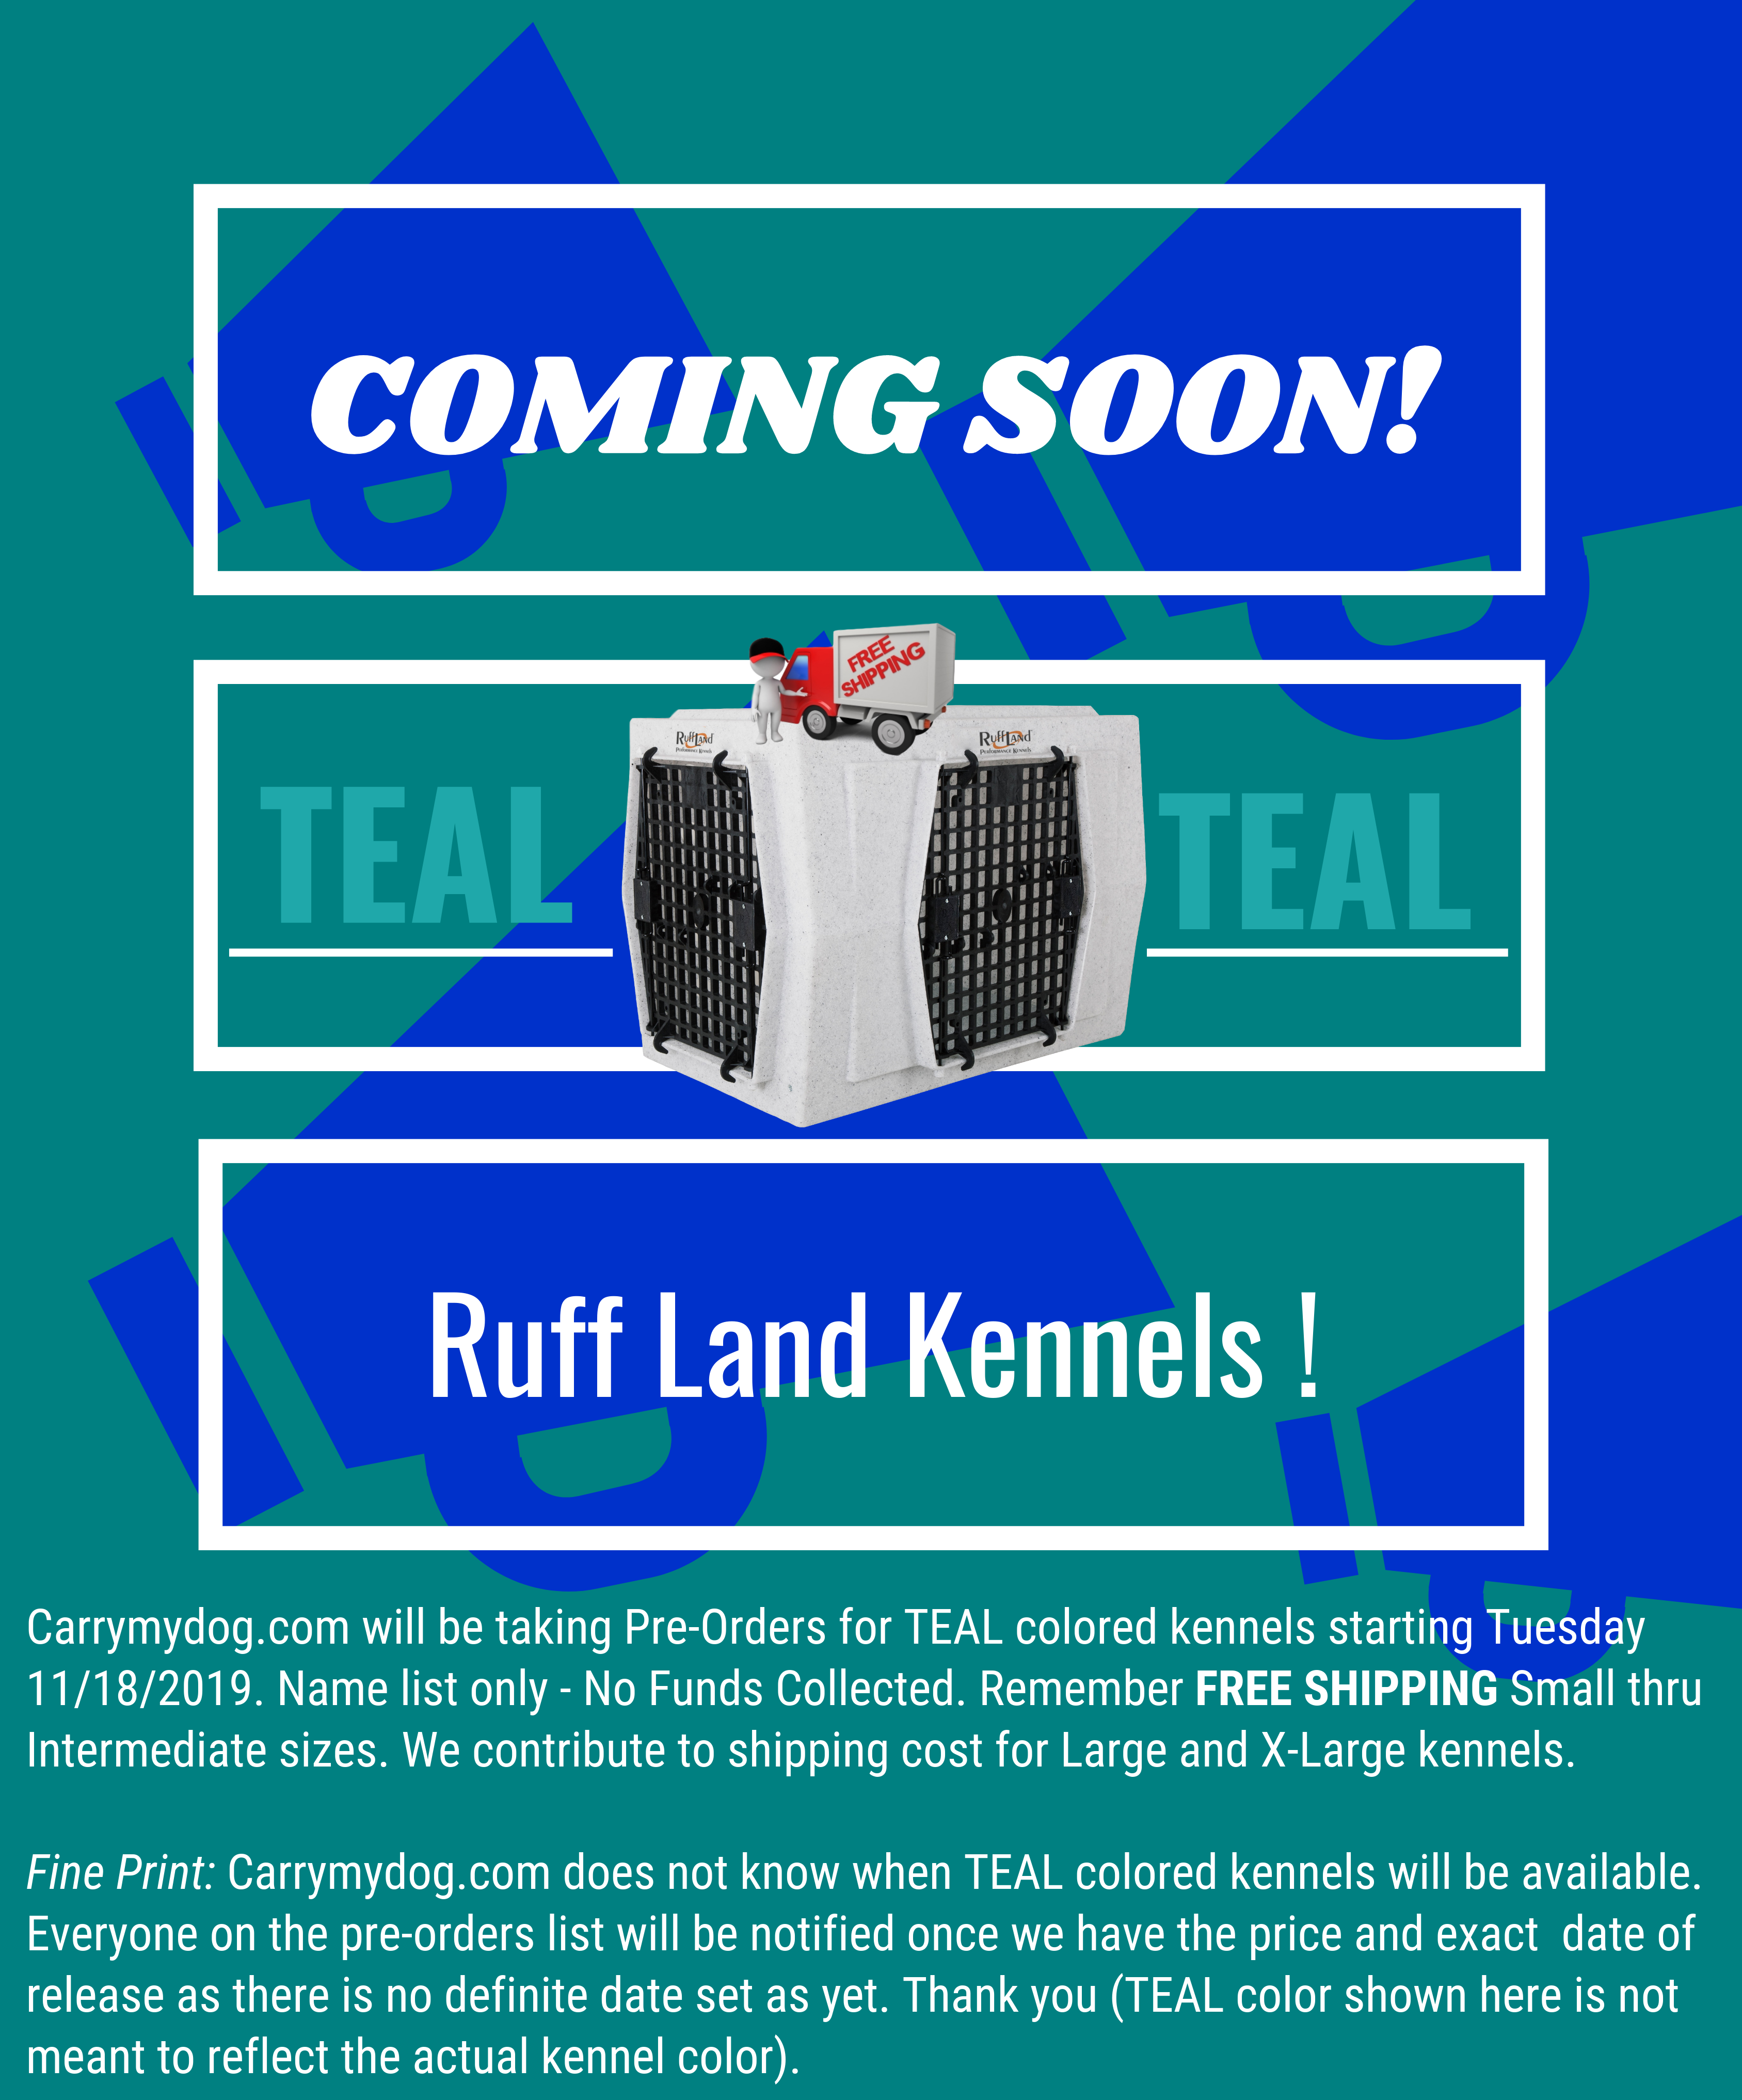 Ruff_Land_Kennels_Teal_Coming_Soon